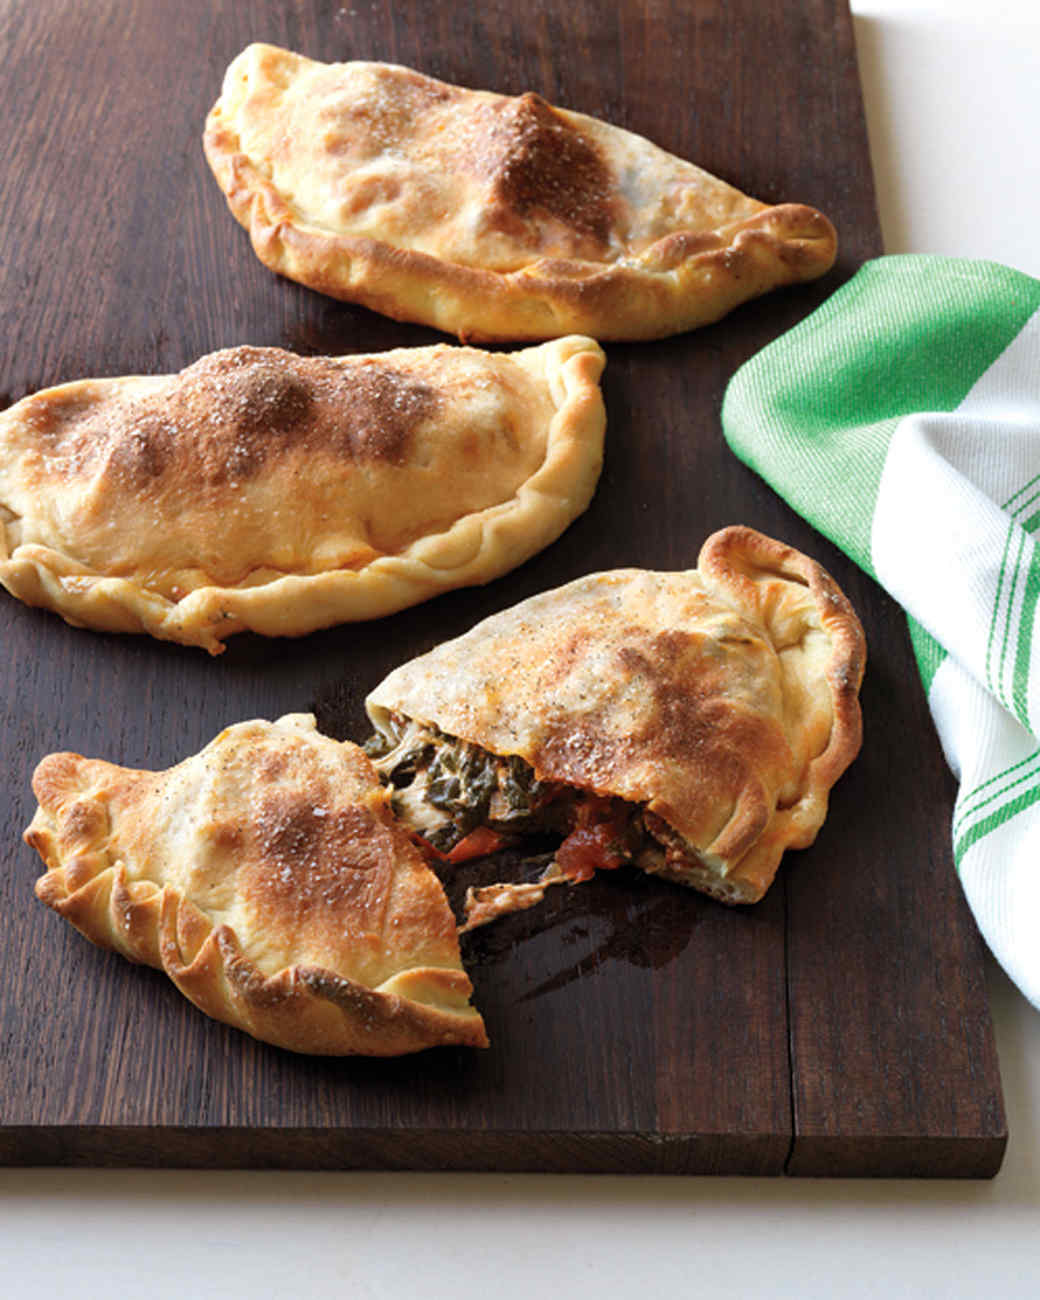 Spinach and Meatball Calzones